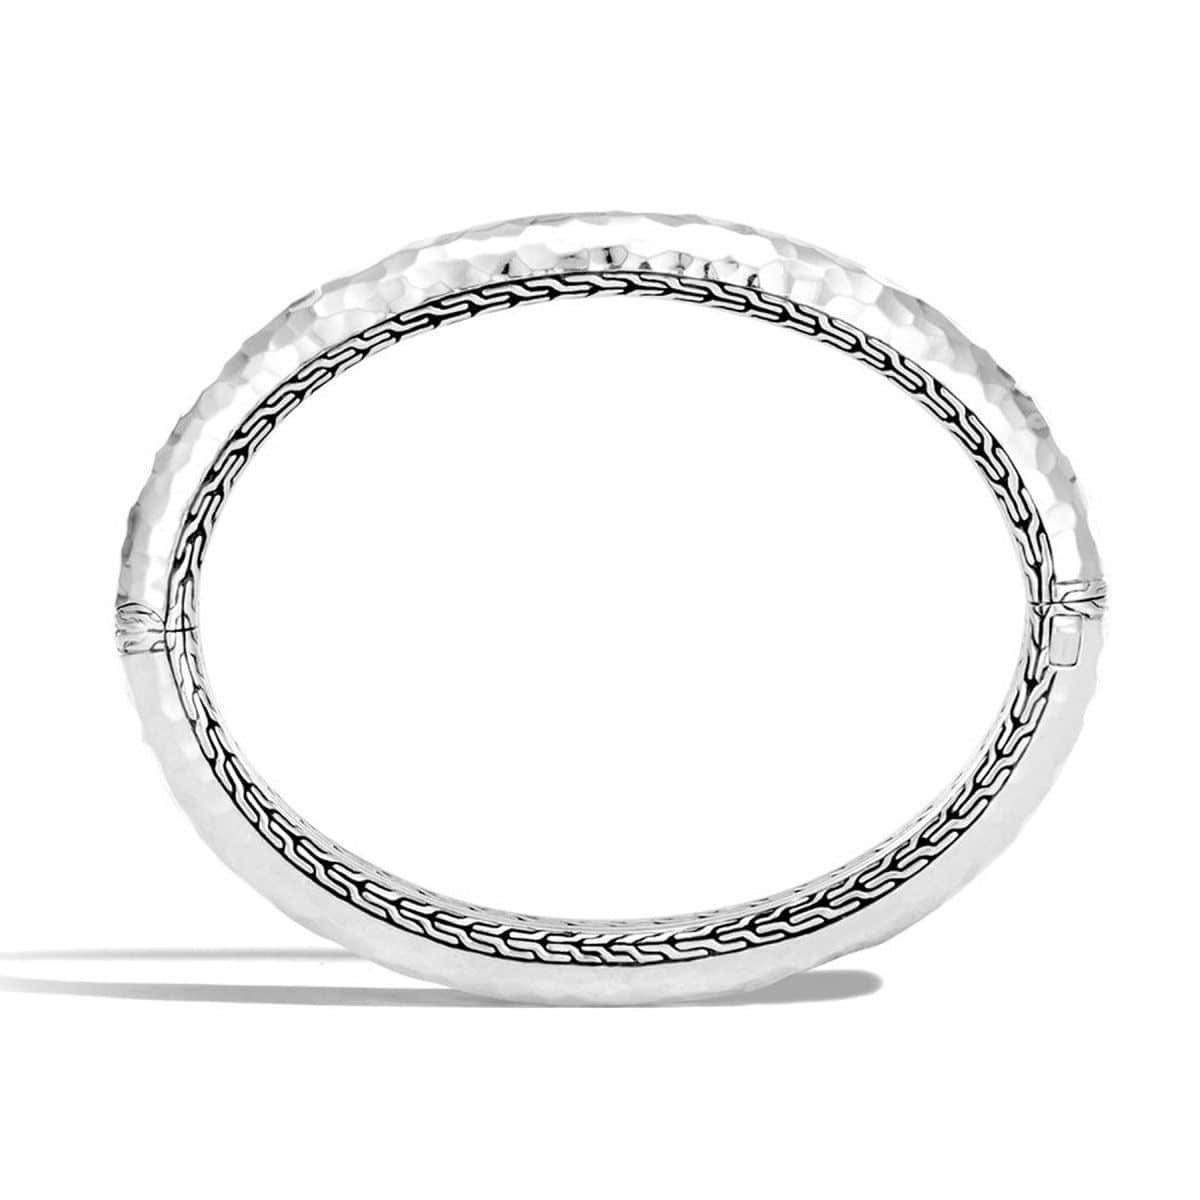 Classic Chain Hammered Silver Bangle - BB999573-John Hardy-Renee Taylor Gallery